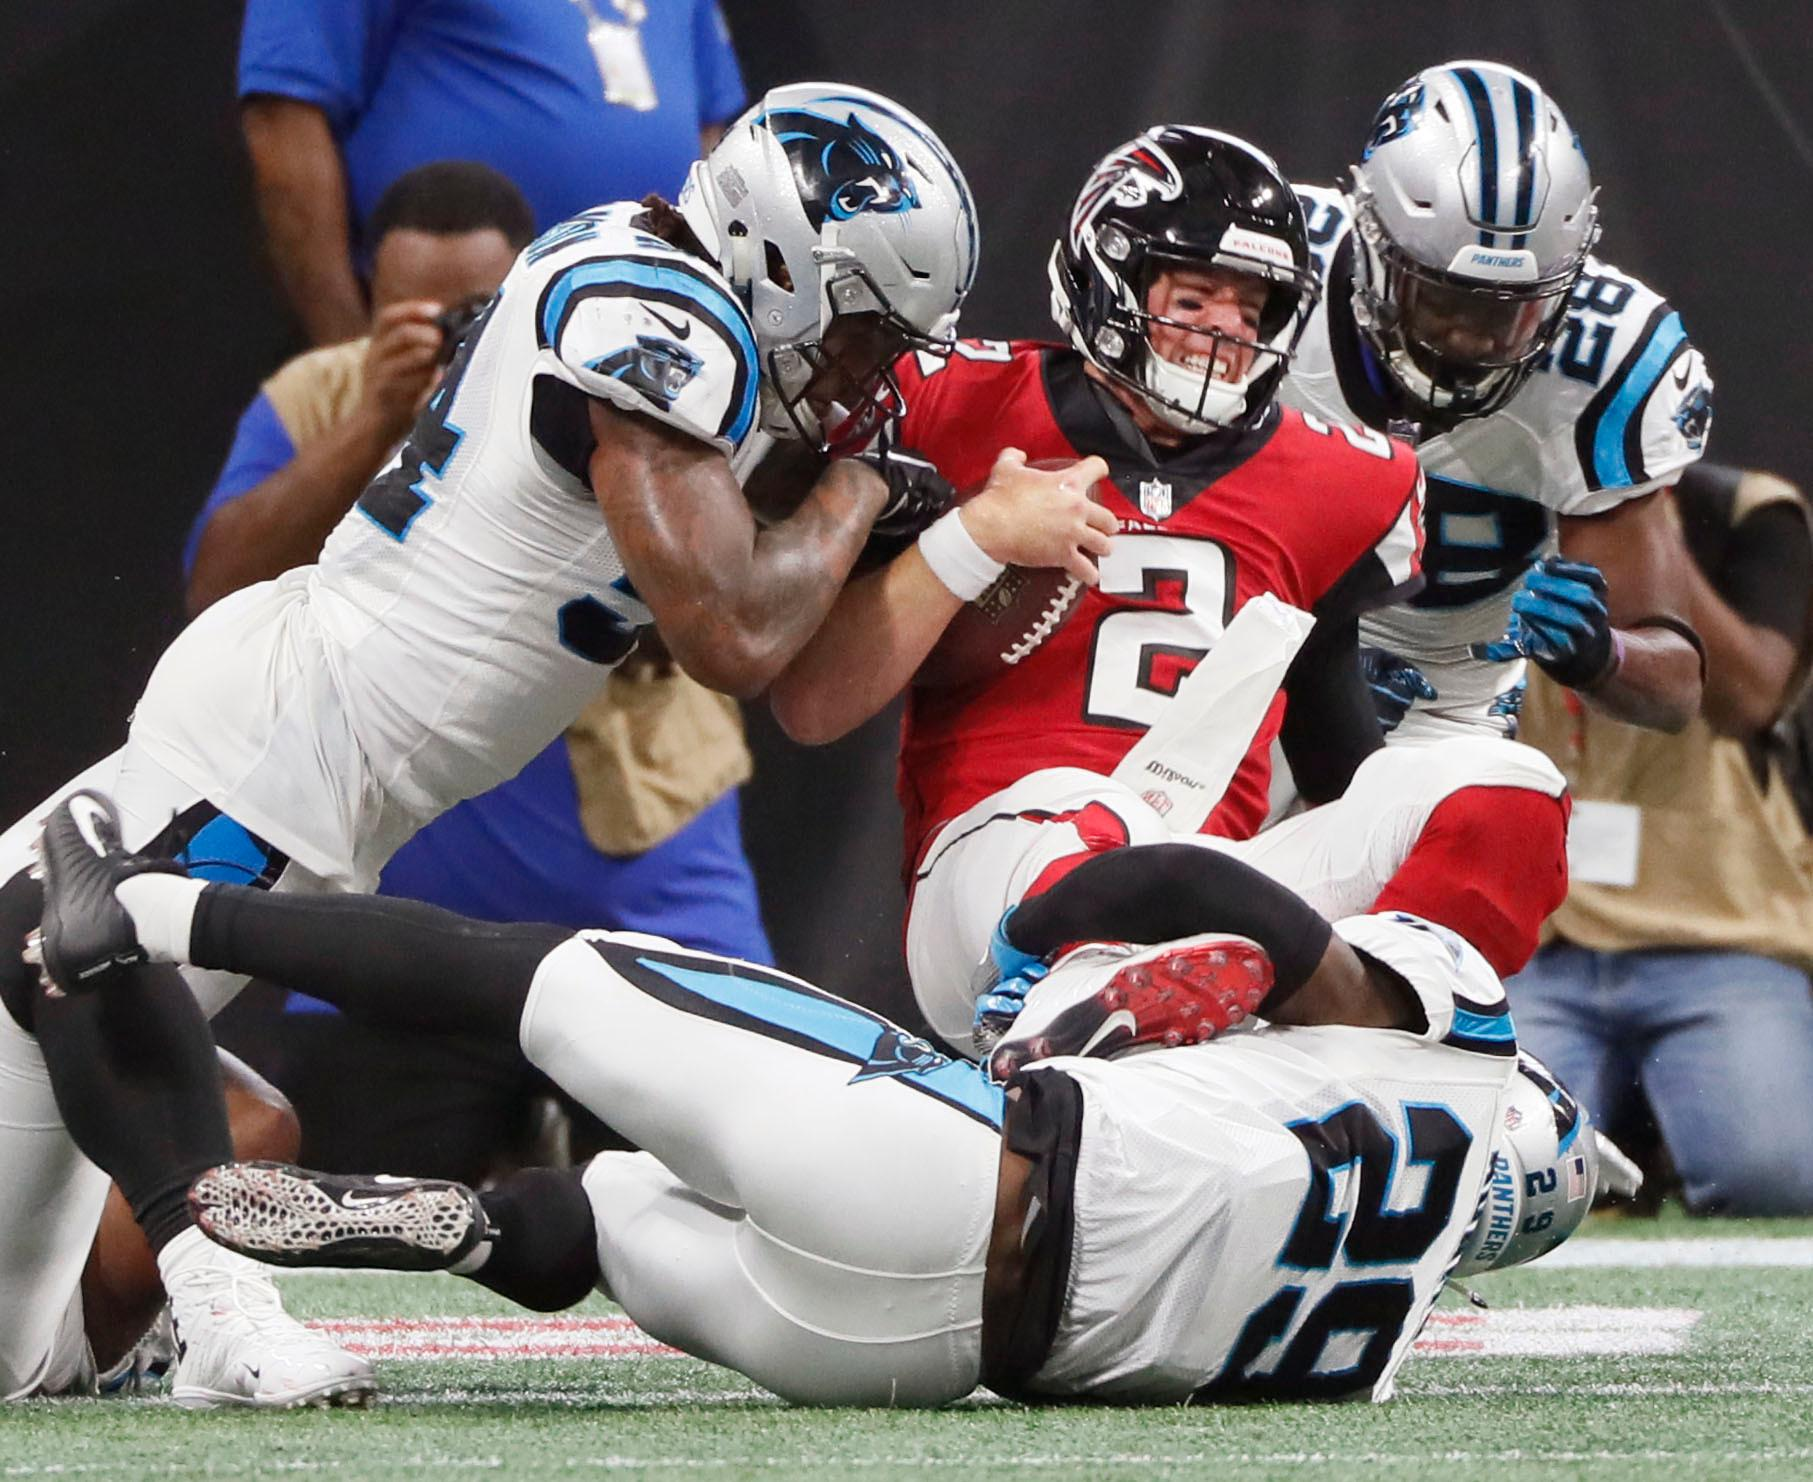 Atlanta Falcons quarterback Matt Ryan (2) muscles across the goal line through Carolina Panthers defenders on a keeper to score during the second half of an NFL football game, Sunday, Sept 16, 2018, in Atlanta. (Bob Andres/Atlanta Journal-Constitution via AP)